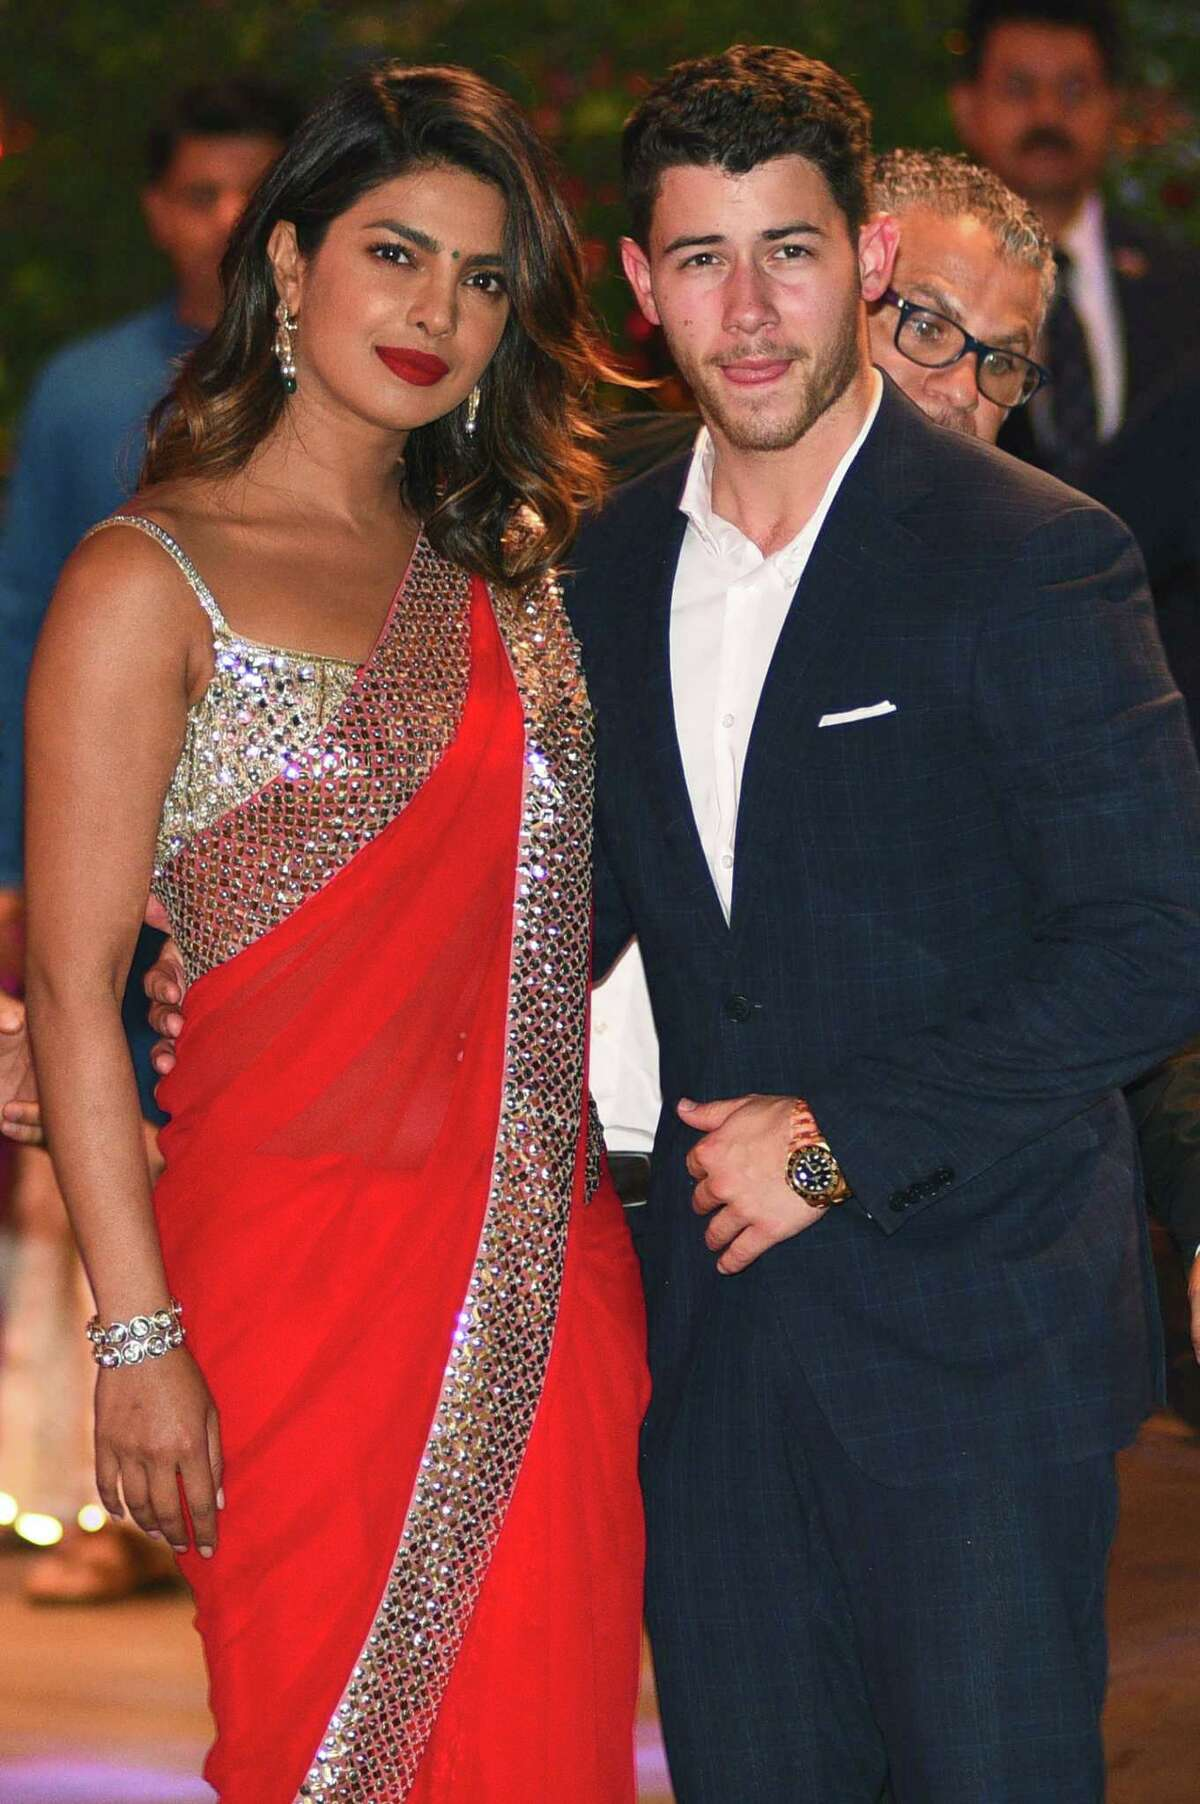 (FILES) In this file photo taken on June 28, 2018, Indian Bollywood actress Priyanka Chopra (L) accompanied by US singer Nick Jonas arrive for the pre-engagement party of India's richest man and Reliance Industries Limited Chairman, Mukesh Ambanis eldest son Akash Ambani and fiancee Shloka Mehta in Mumbai. Chopra is engaged to Jonas after a whirlwind two months of dating, People magazine, citing unnamed sources close to the pair, reported on July 27, 2018. / AFP PHOTO / SUJIT JAISWALSUJIT JAISWAL/AFP/Getty Images